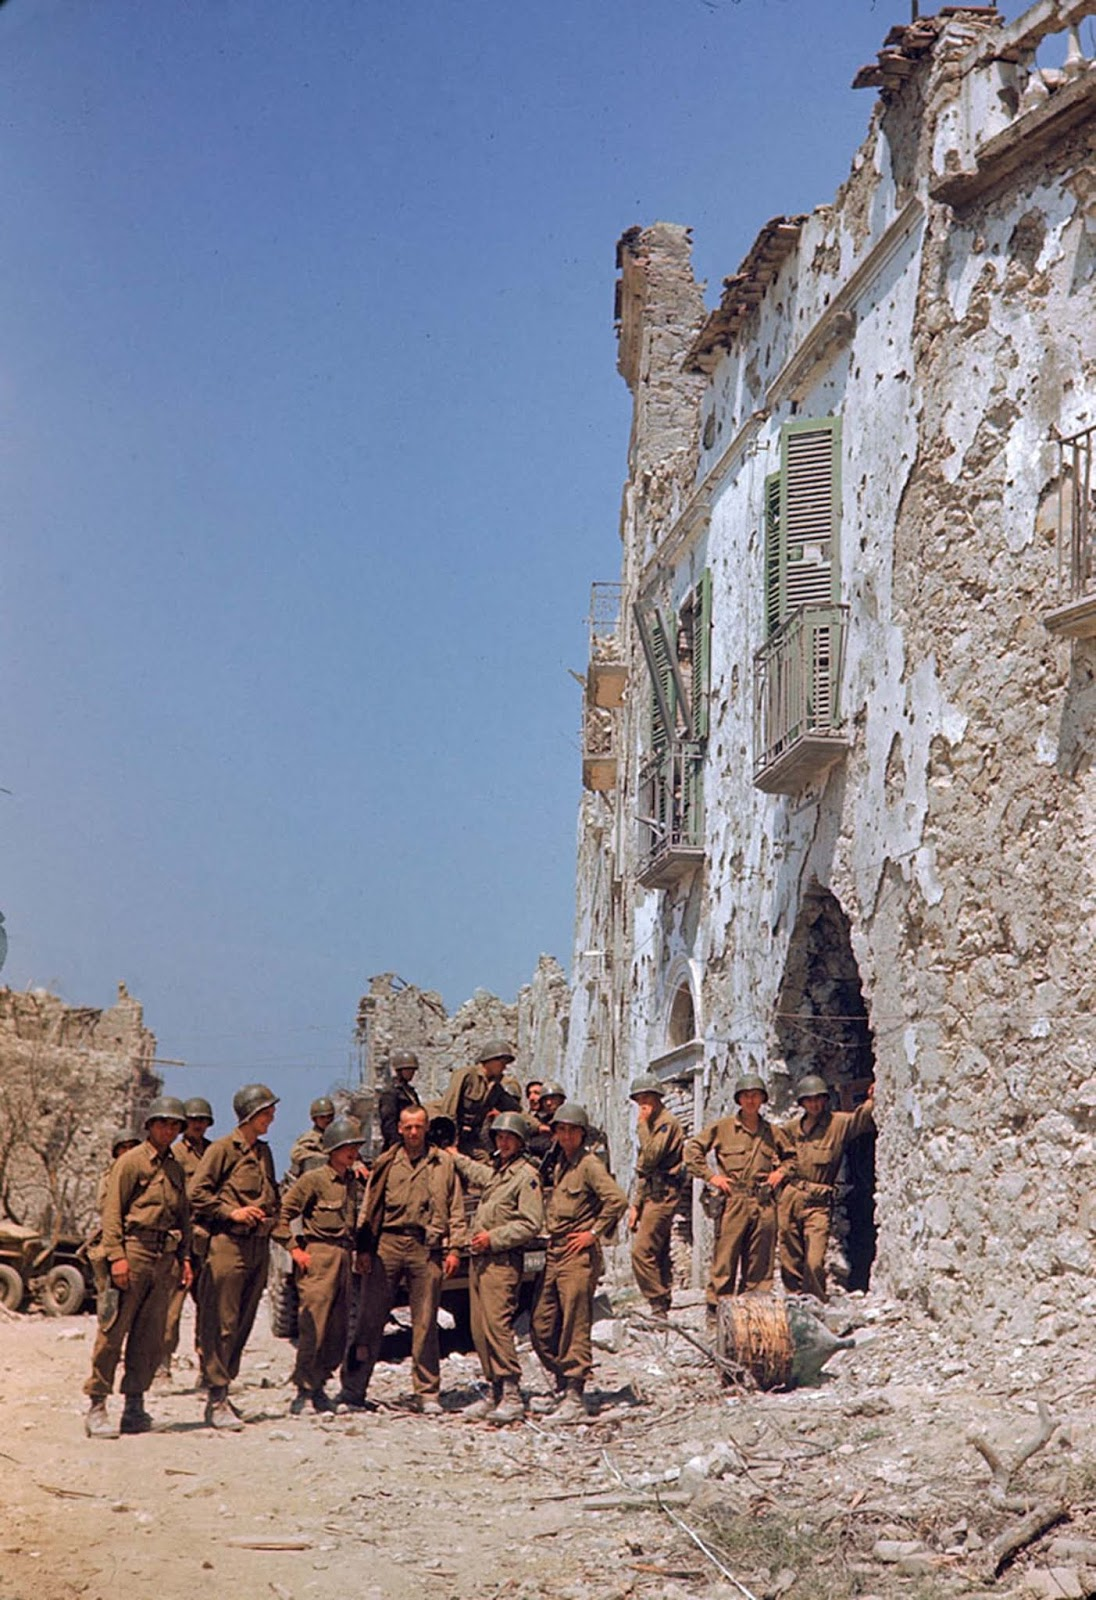 American troops stood in front of a bombed-out building during the drive towards Rome, WWII.